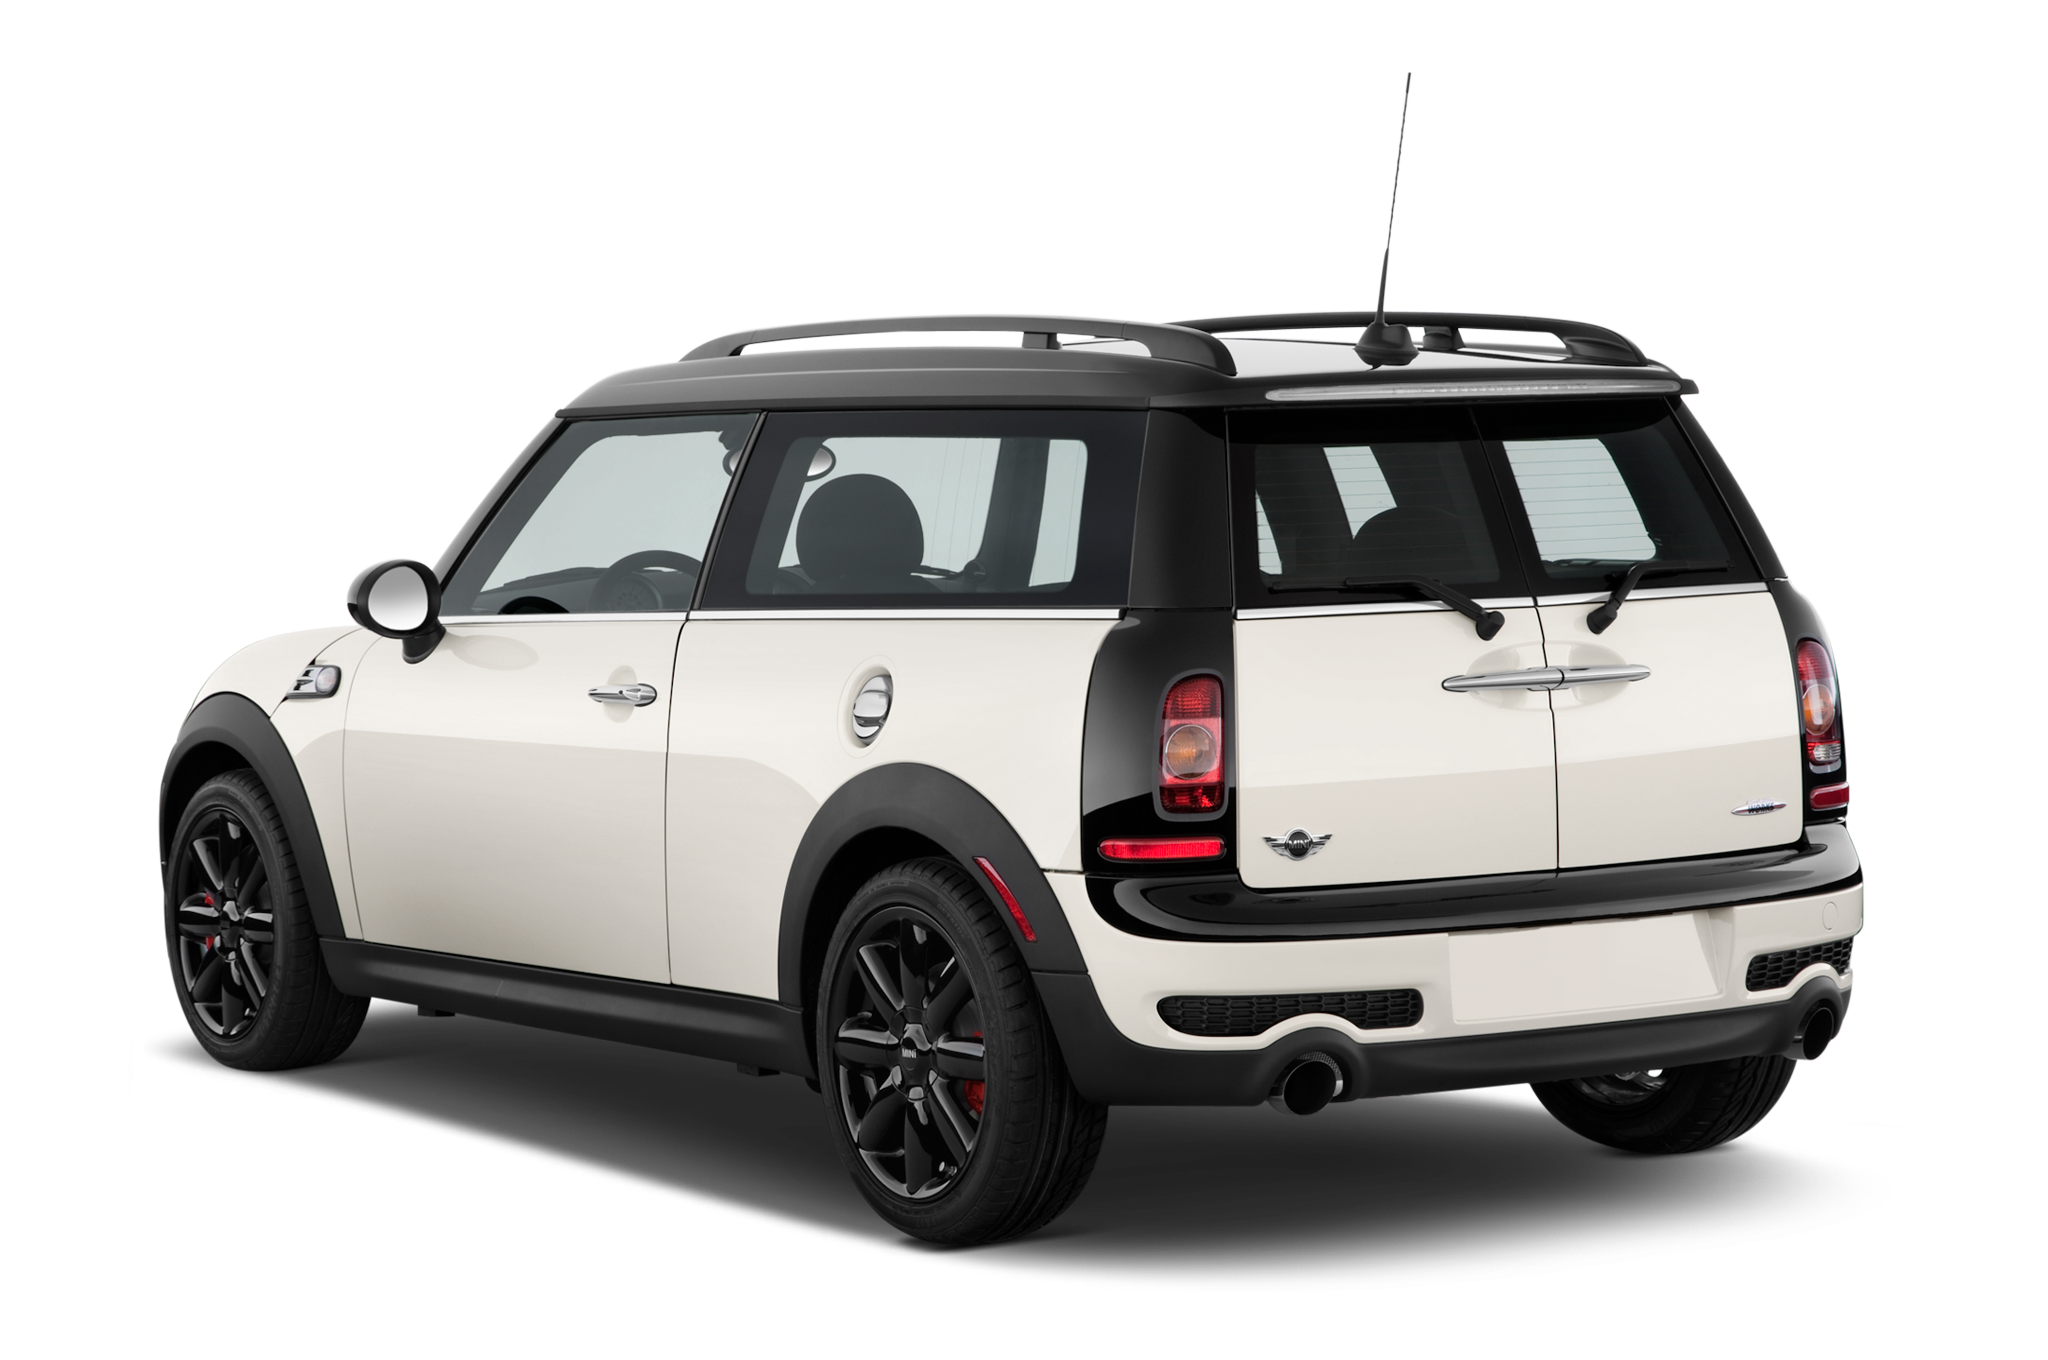 2010 mini john cooper works clubman mini jcw sport wagon. Black Bedroom Furniture Sets. Home Design Ideas